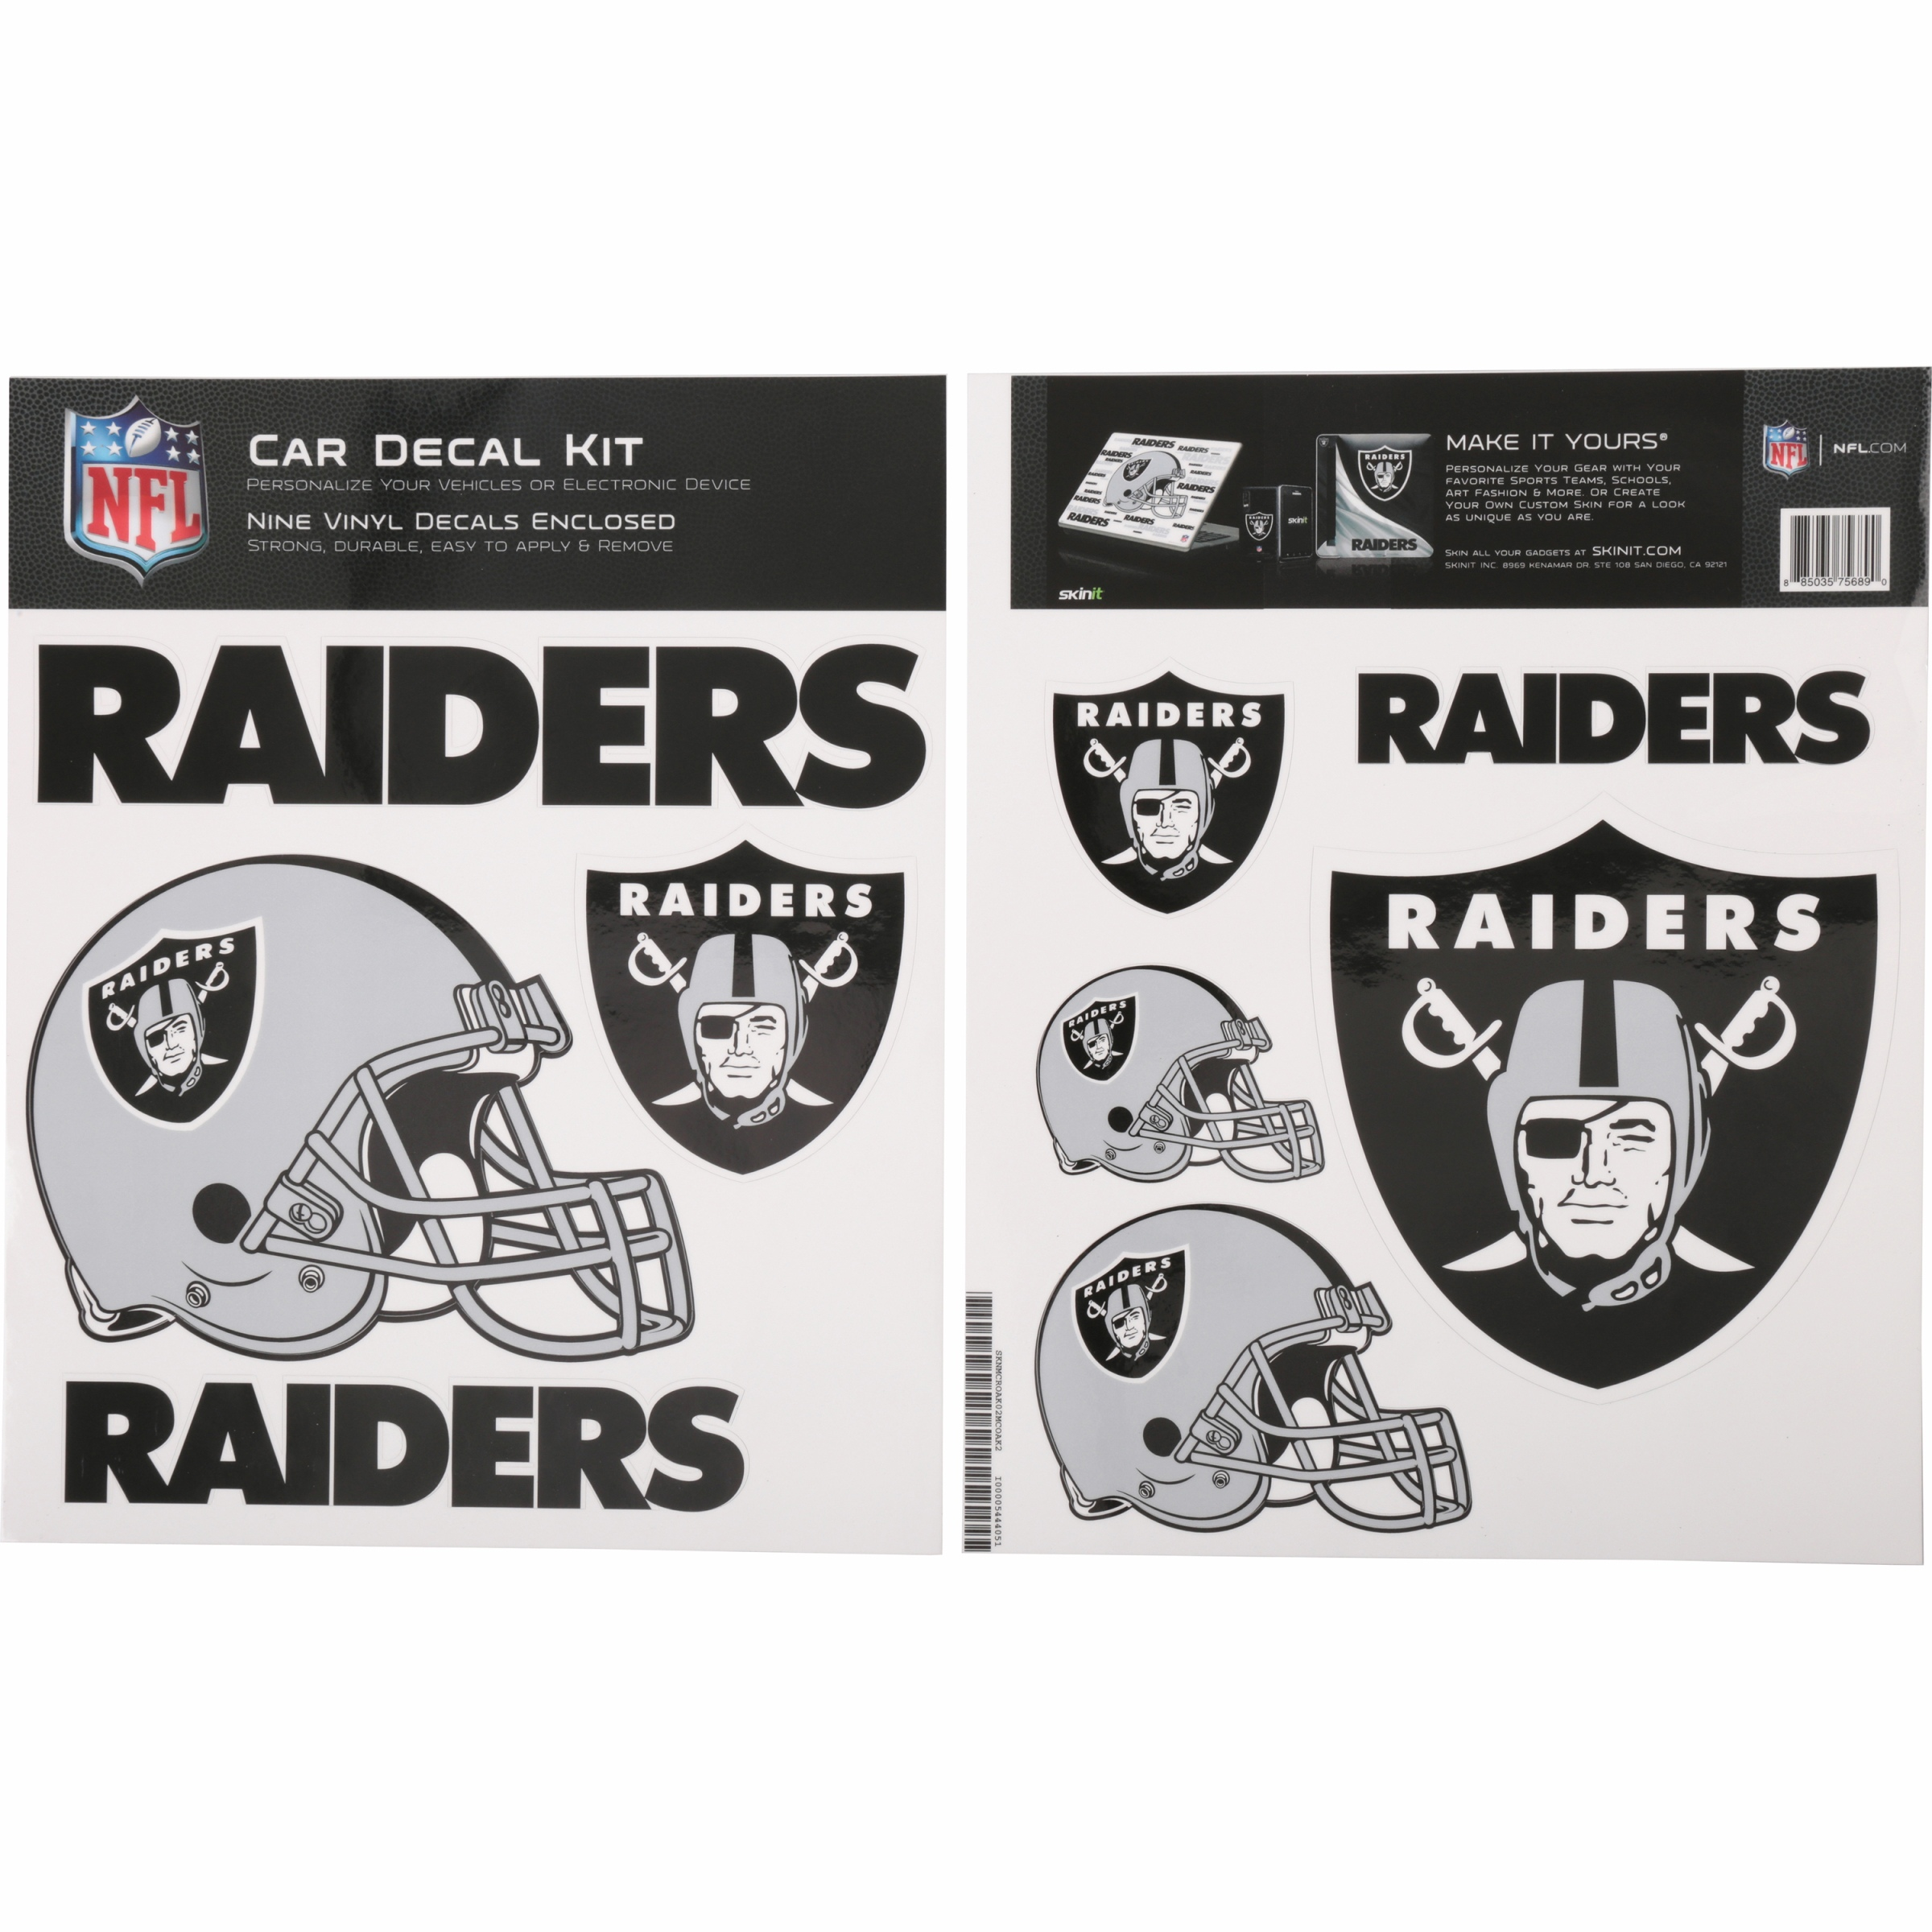 Skinit Oakland Raiders Car Decal Kit Walmart Com Walmart Com